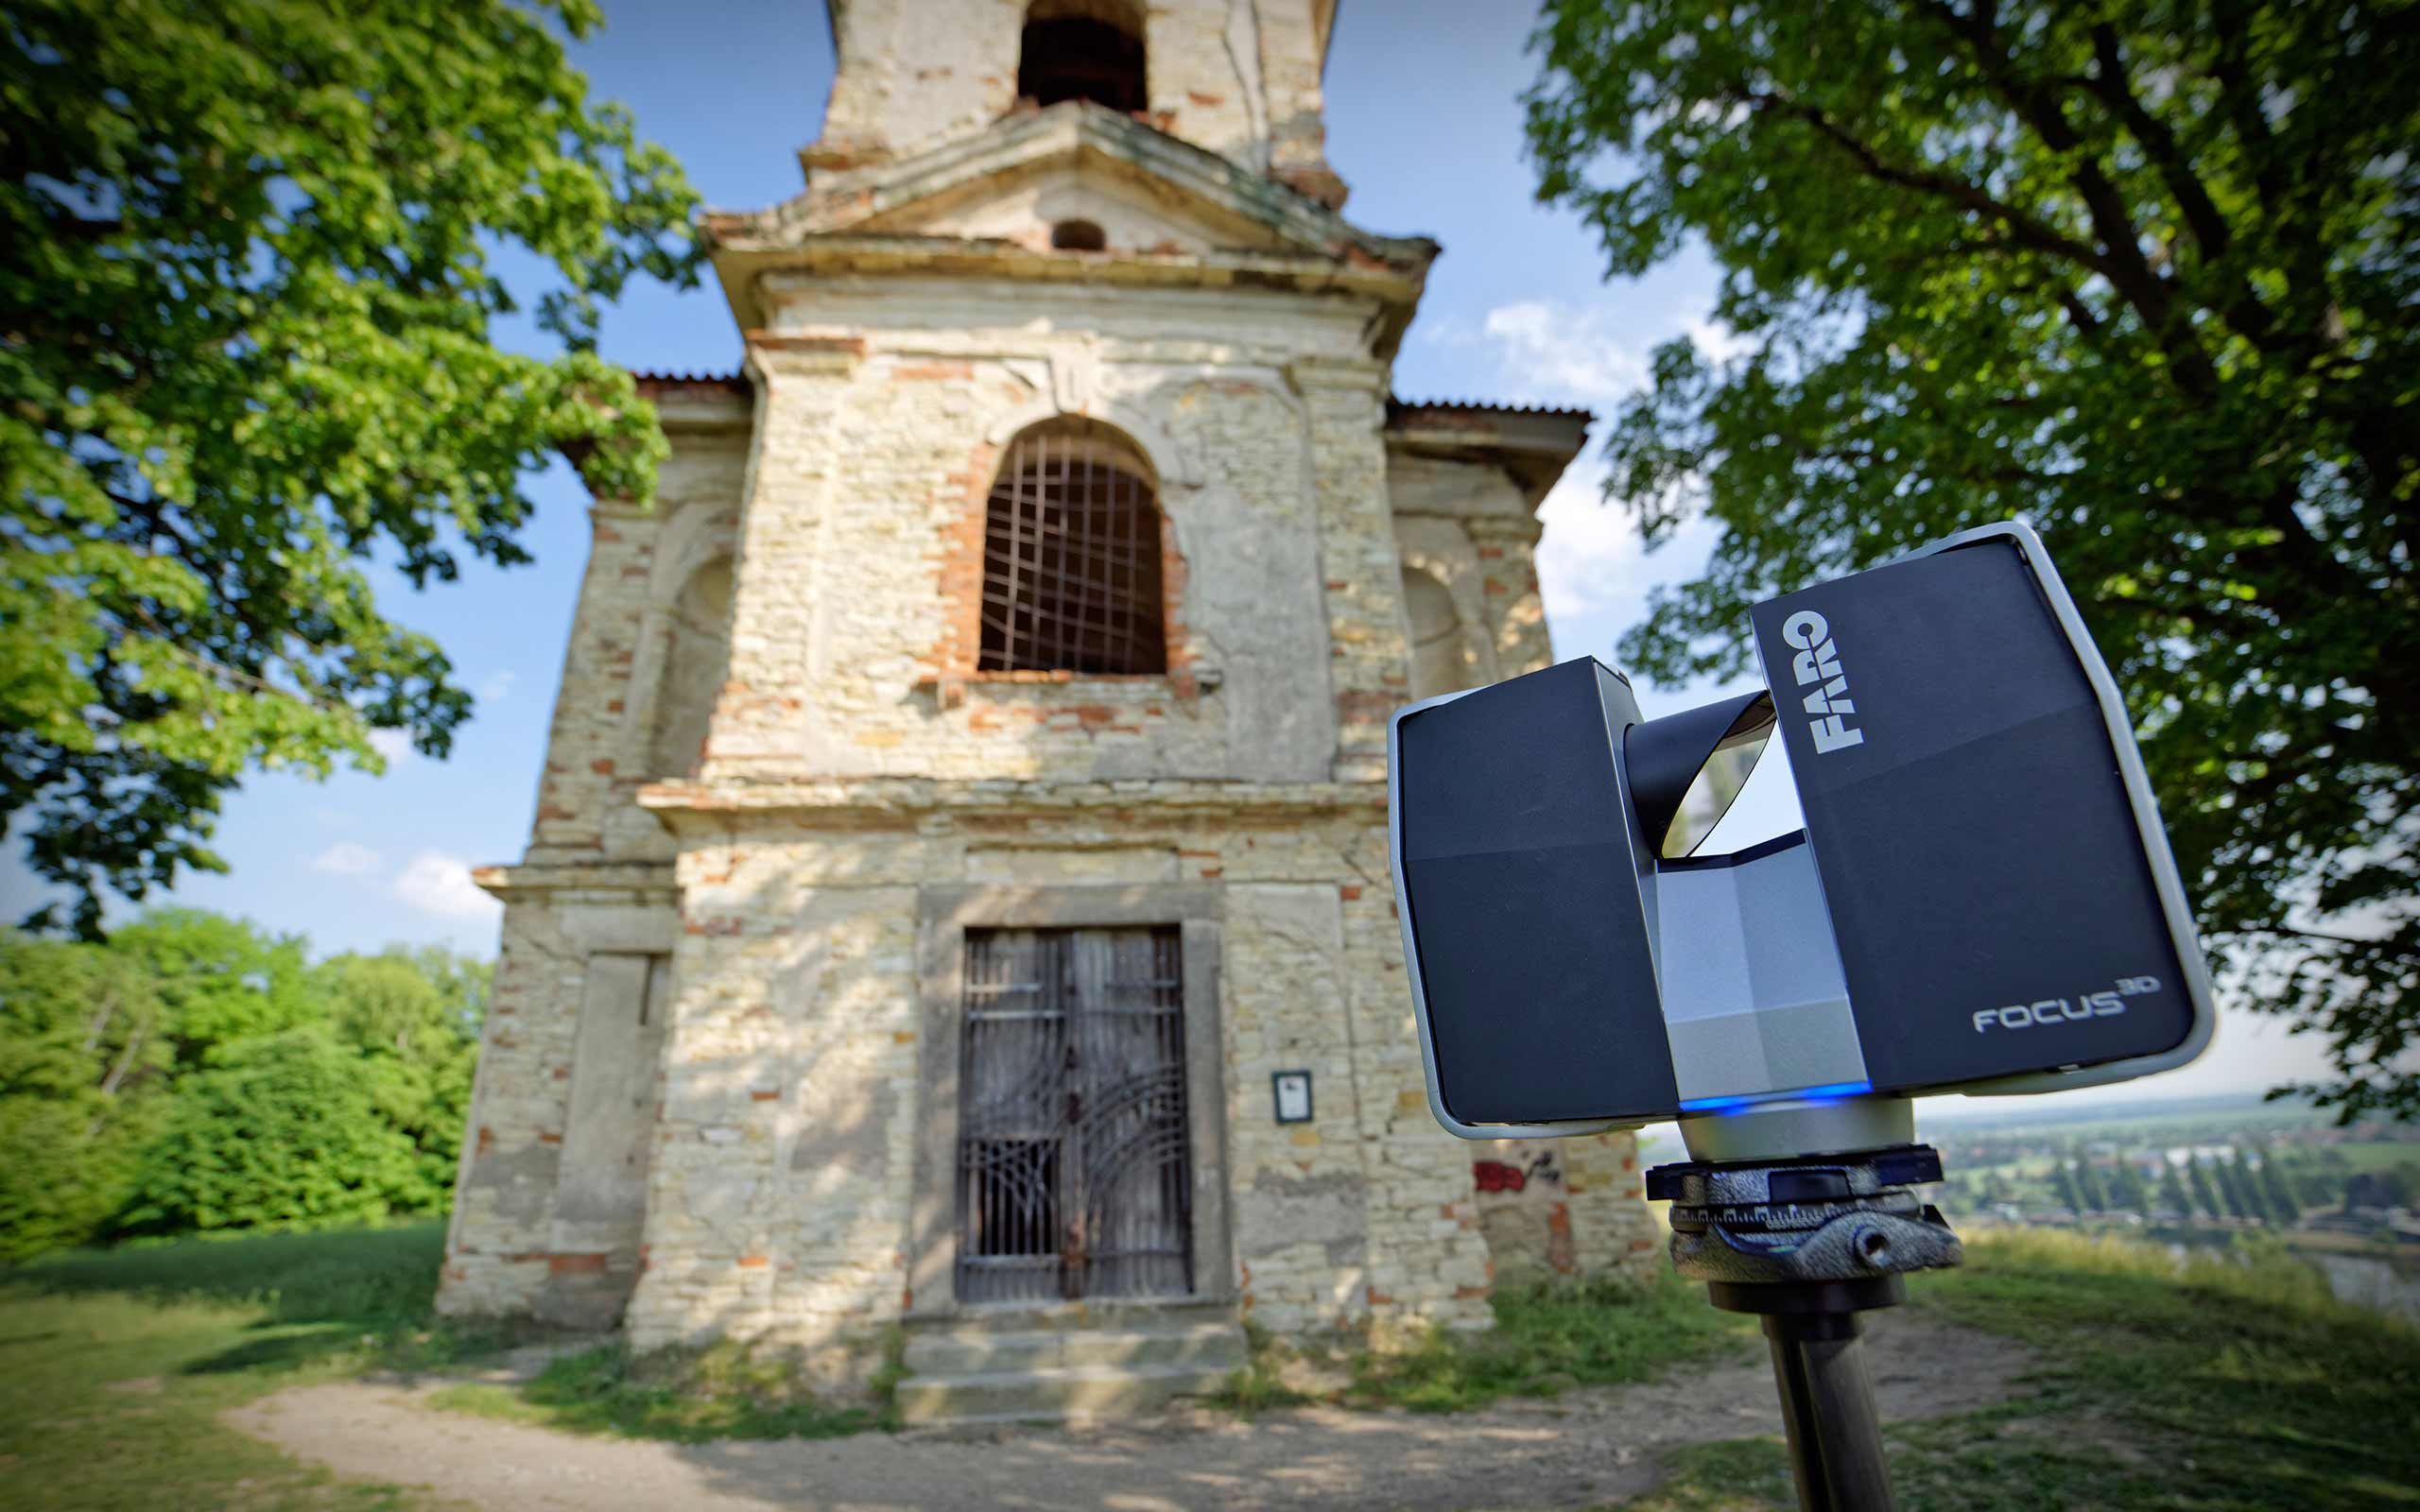 Faro Focus 3D scanner scanning church in Libechov